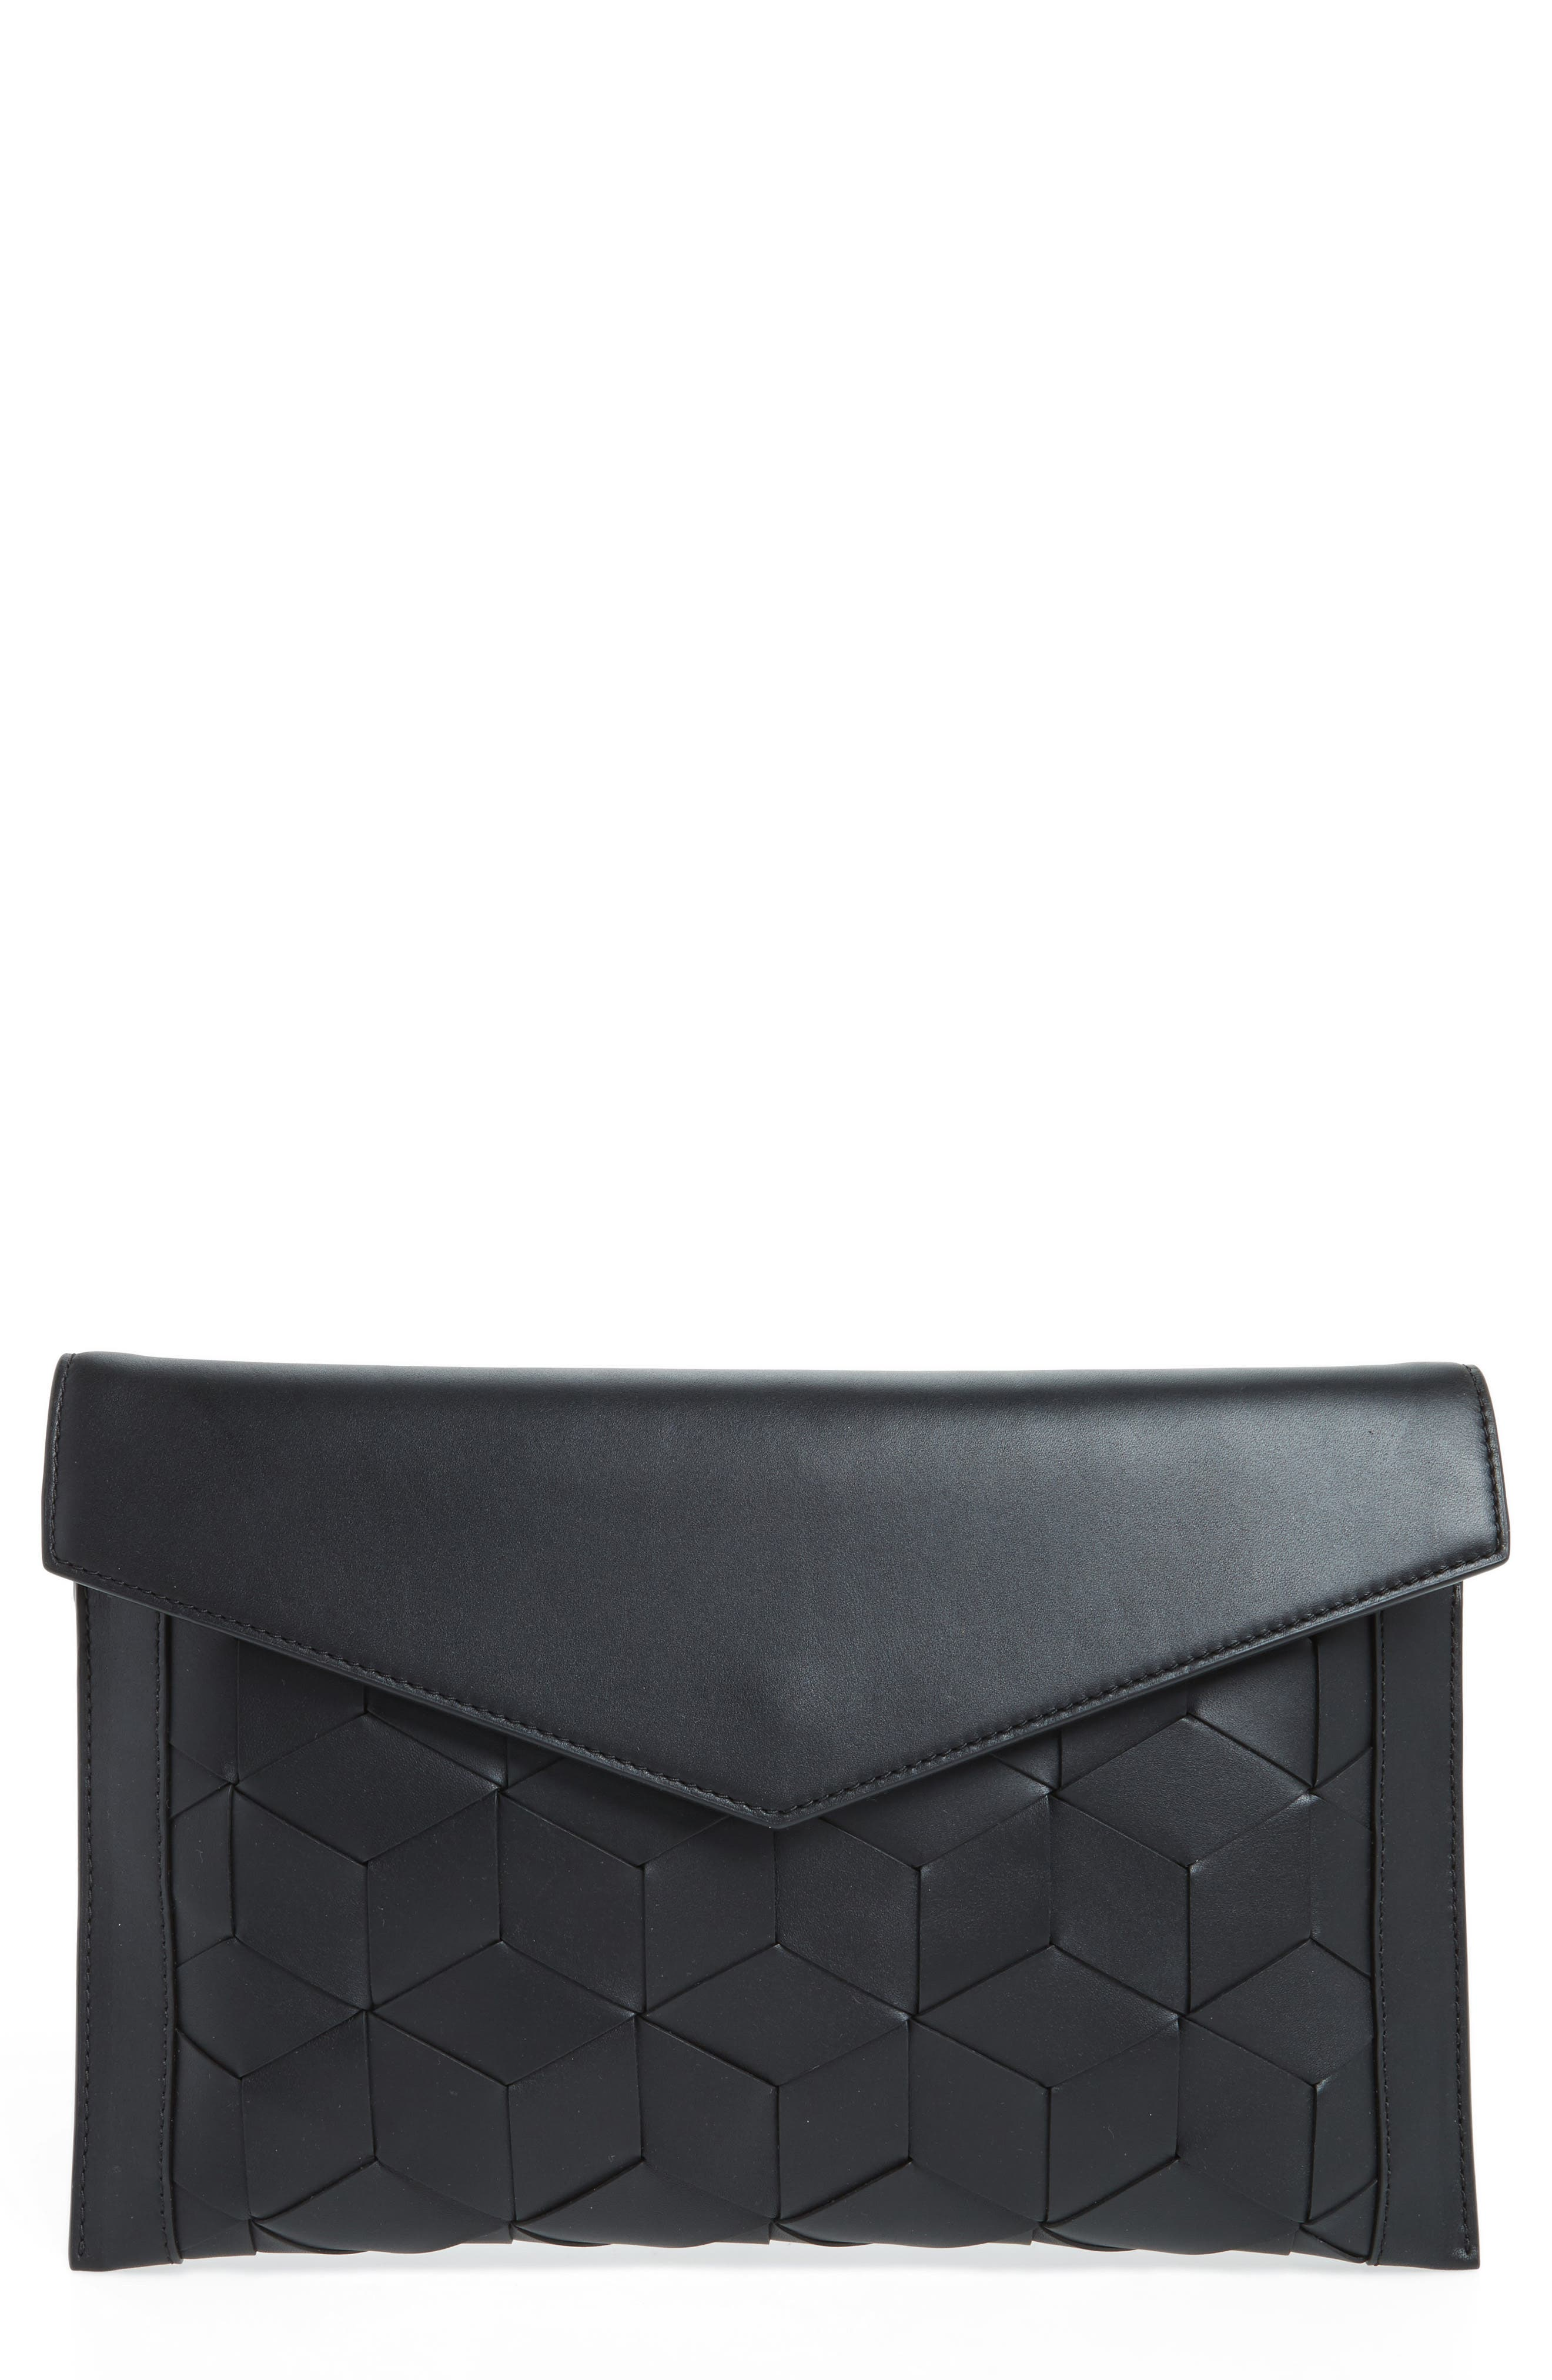 Main Image - Welden Mingle Woven Calfskin Leather Clutch